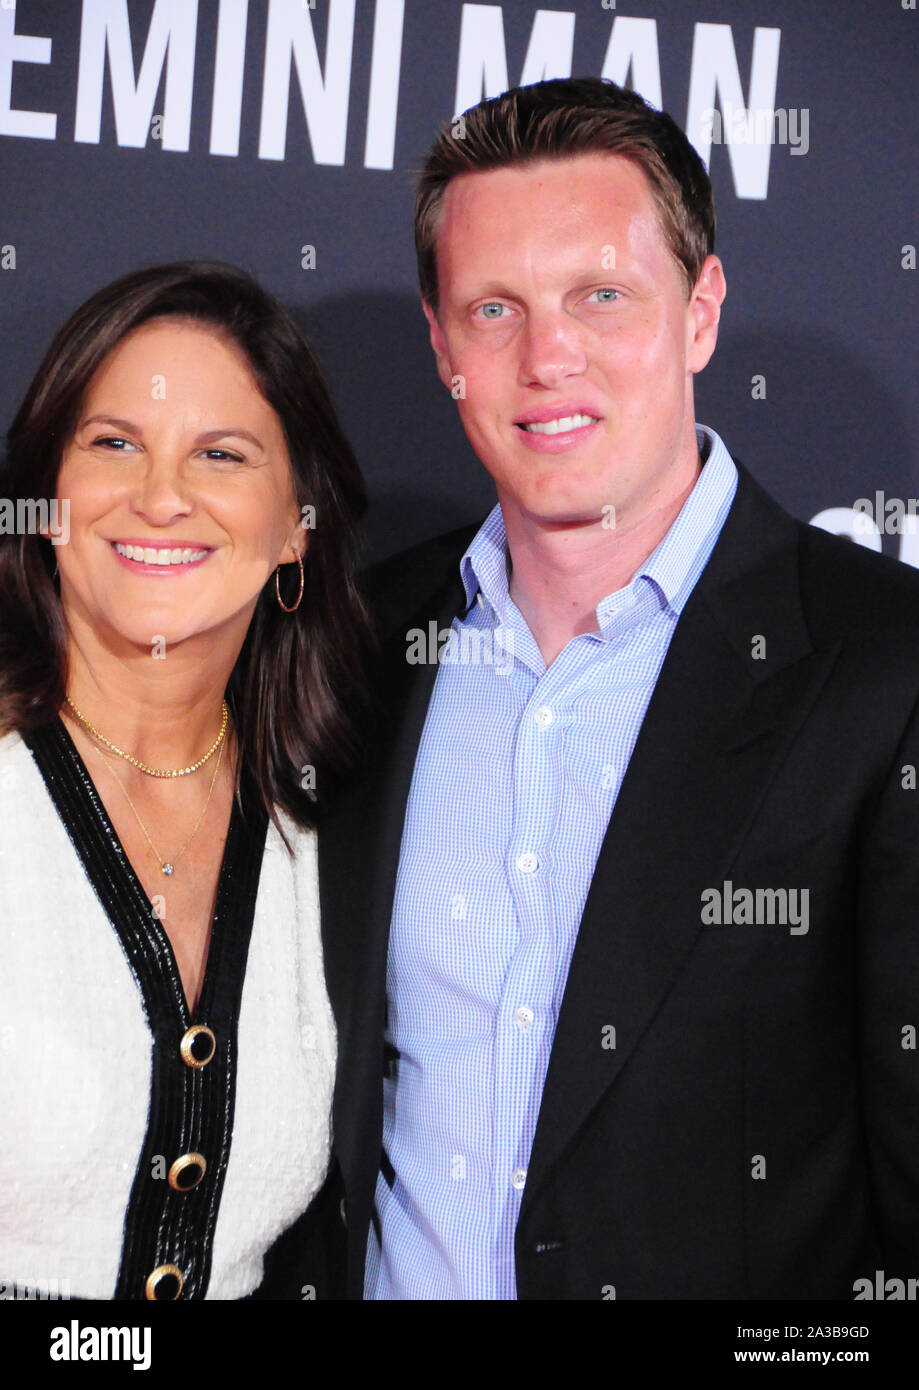 Hollywood, California, USA 6th October 2019 Producers Dana Goldberg and David Ellison attend Paramount Pictures Presents The Premiere of 'Gemini Man' on October 6, 2019 at TCL Chinese Theatre in Hollywood, California, USA. Photo by Barry King/Alamy Live News Stock Photo